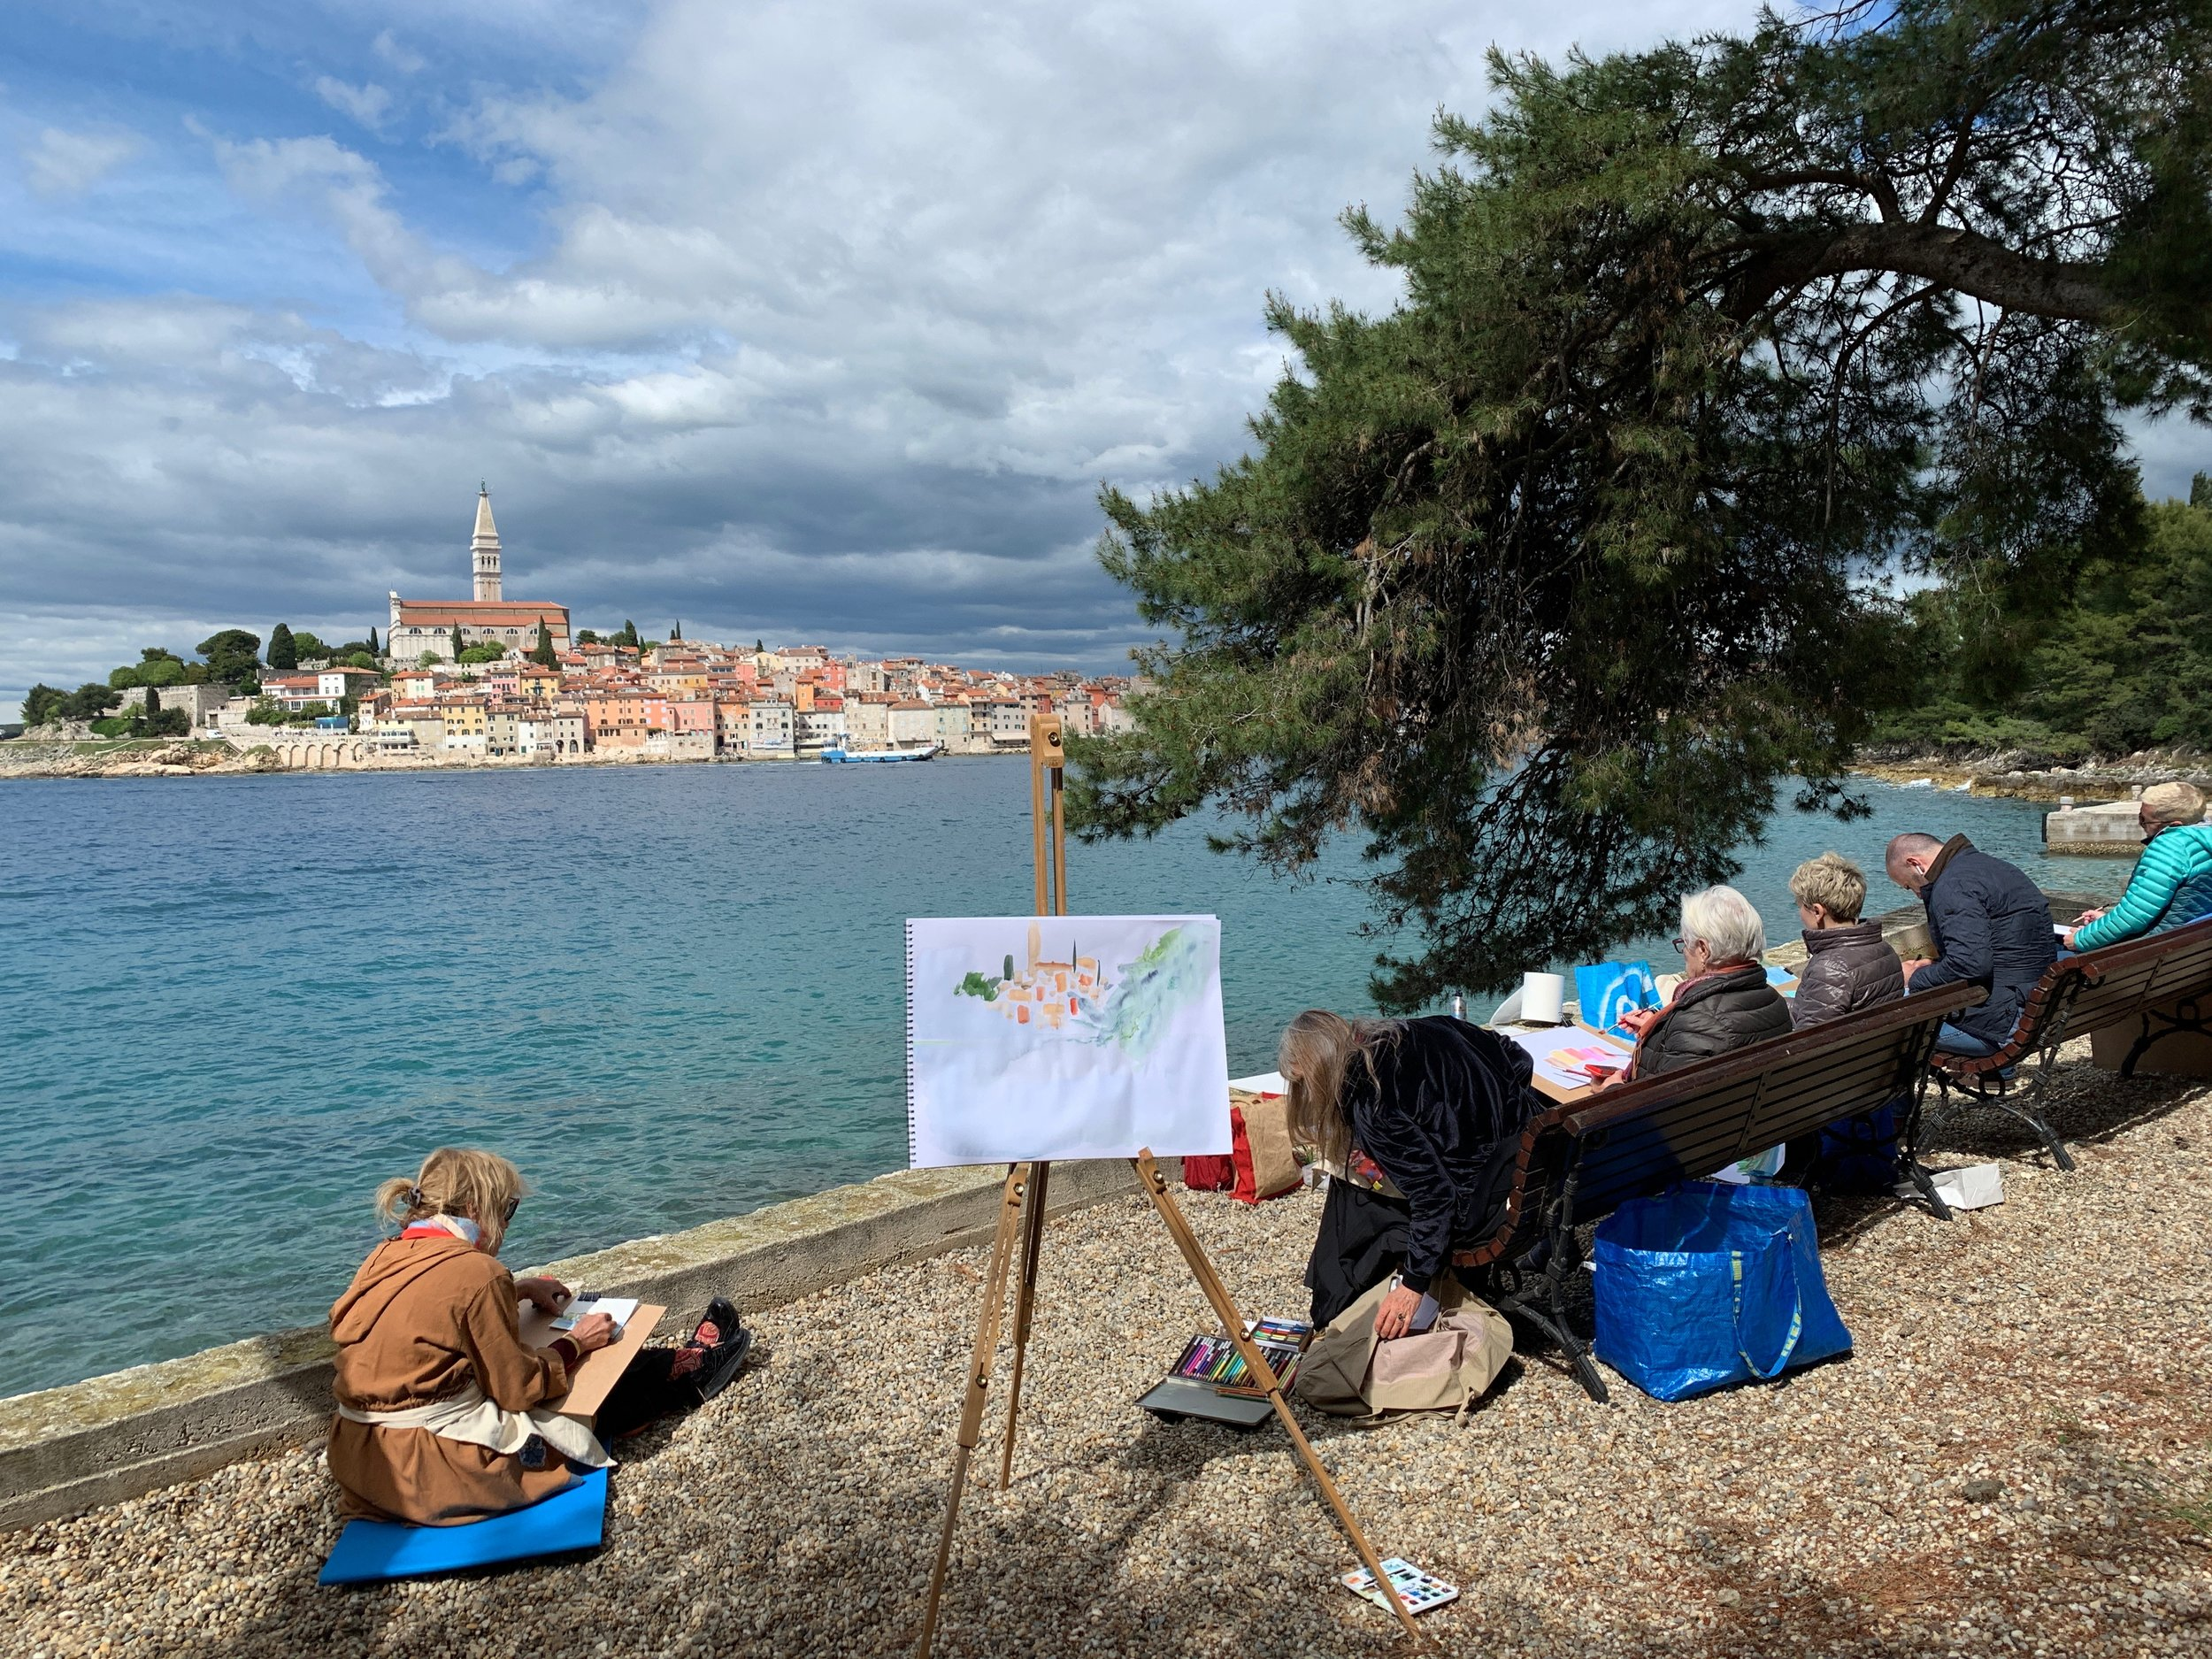 2019 class sketching on Santa Katarina Island